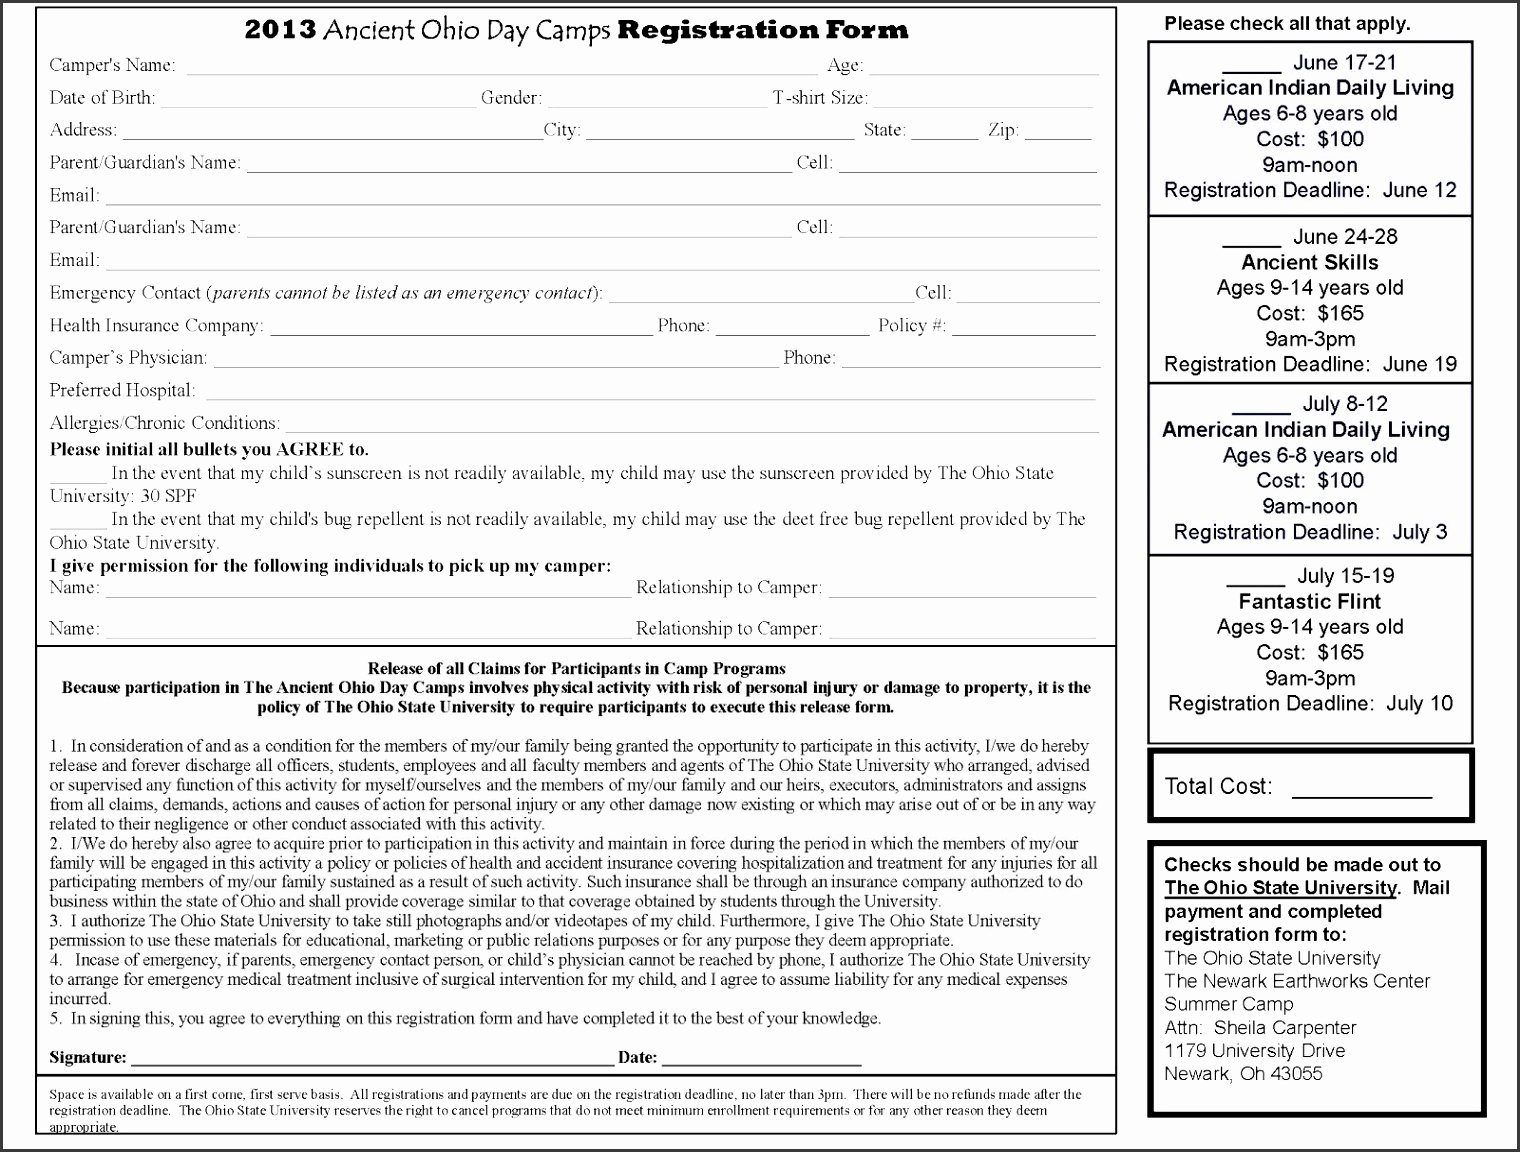 Day Camp Registration form Template Beautiful 6 Camp Registration form Templates Sampletemplatess